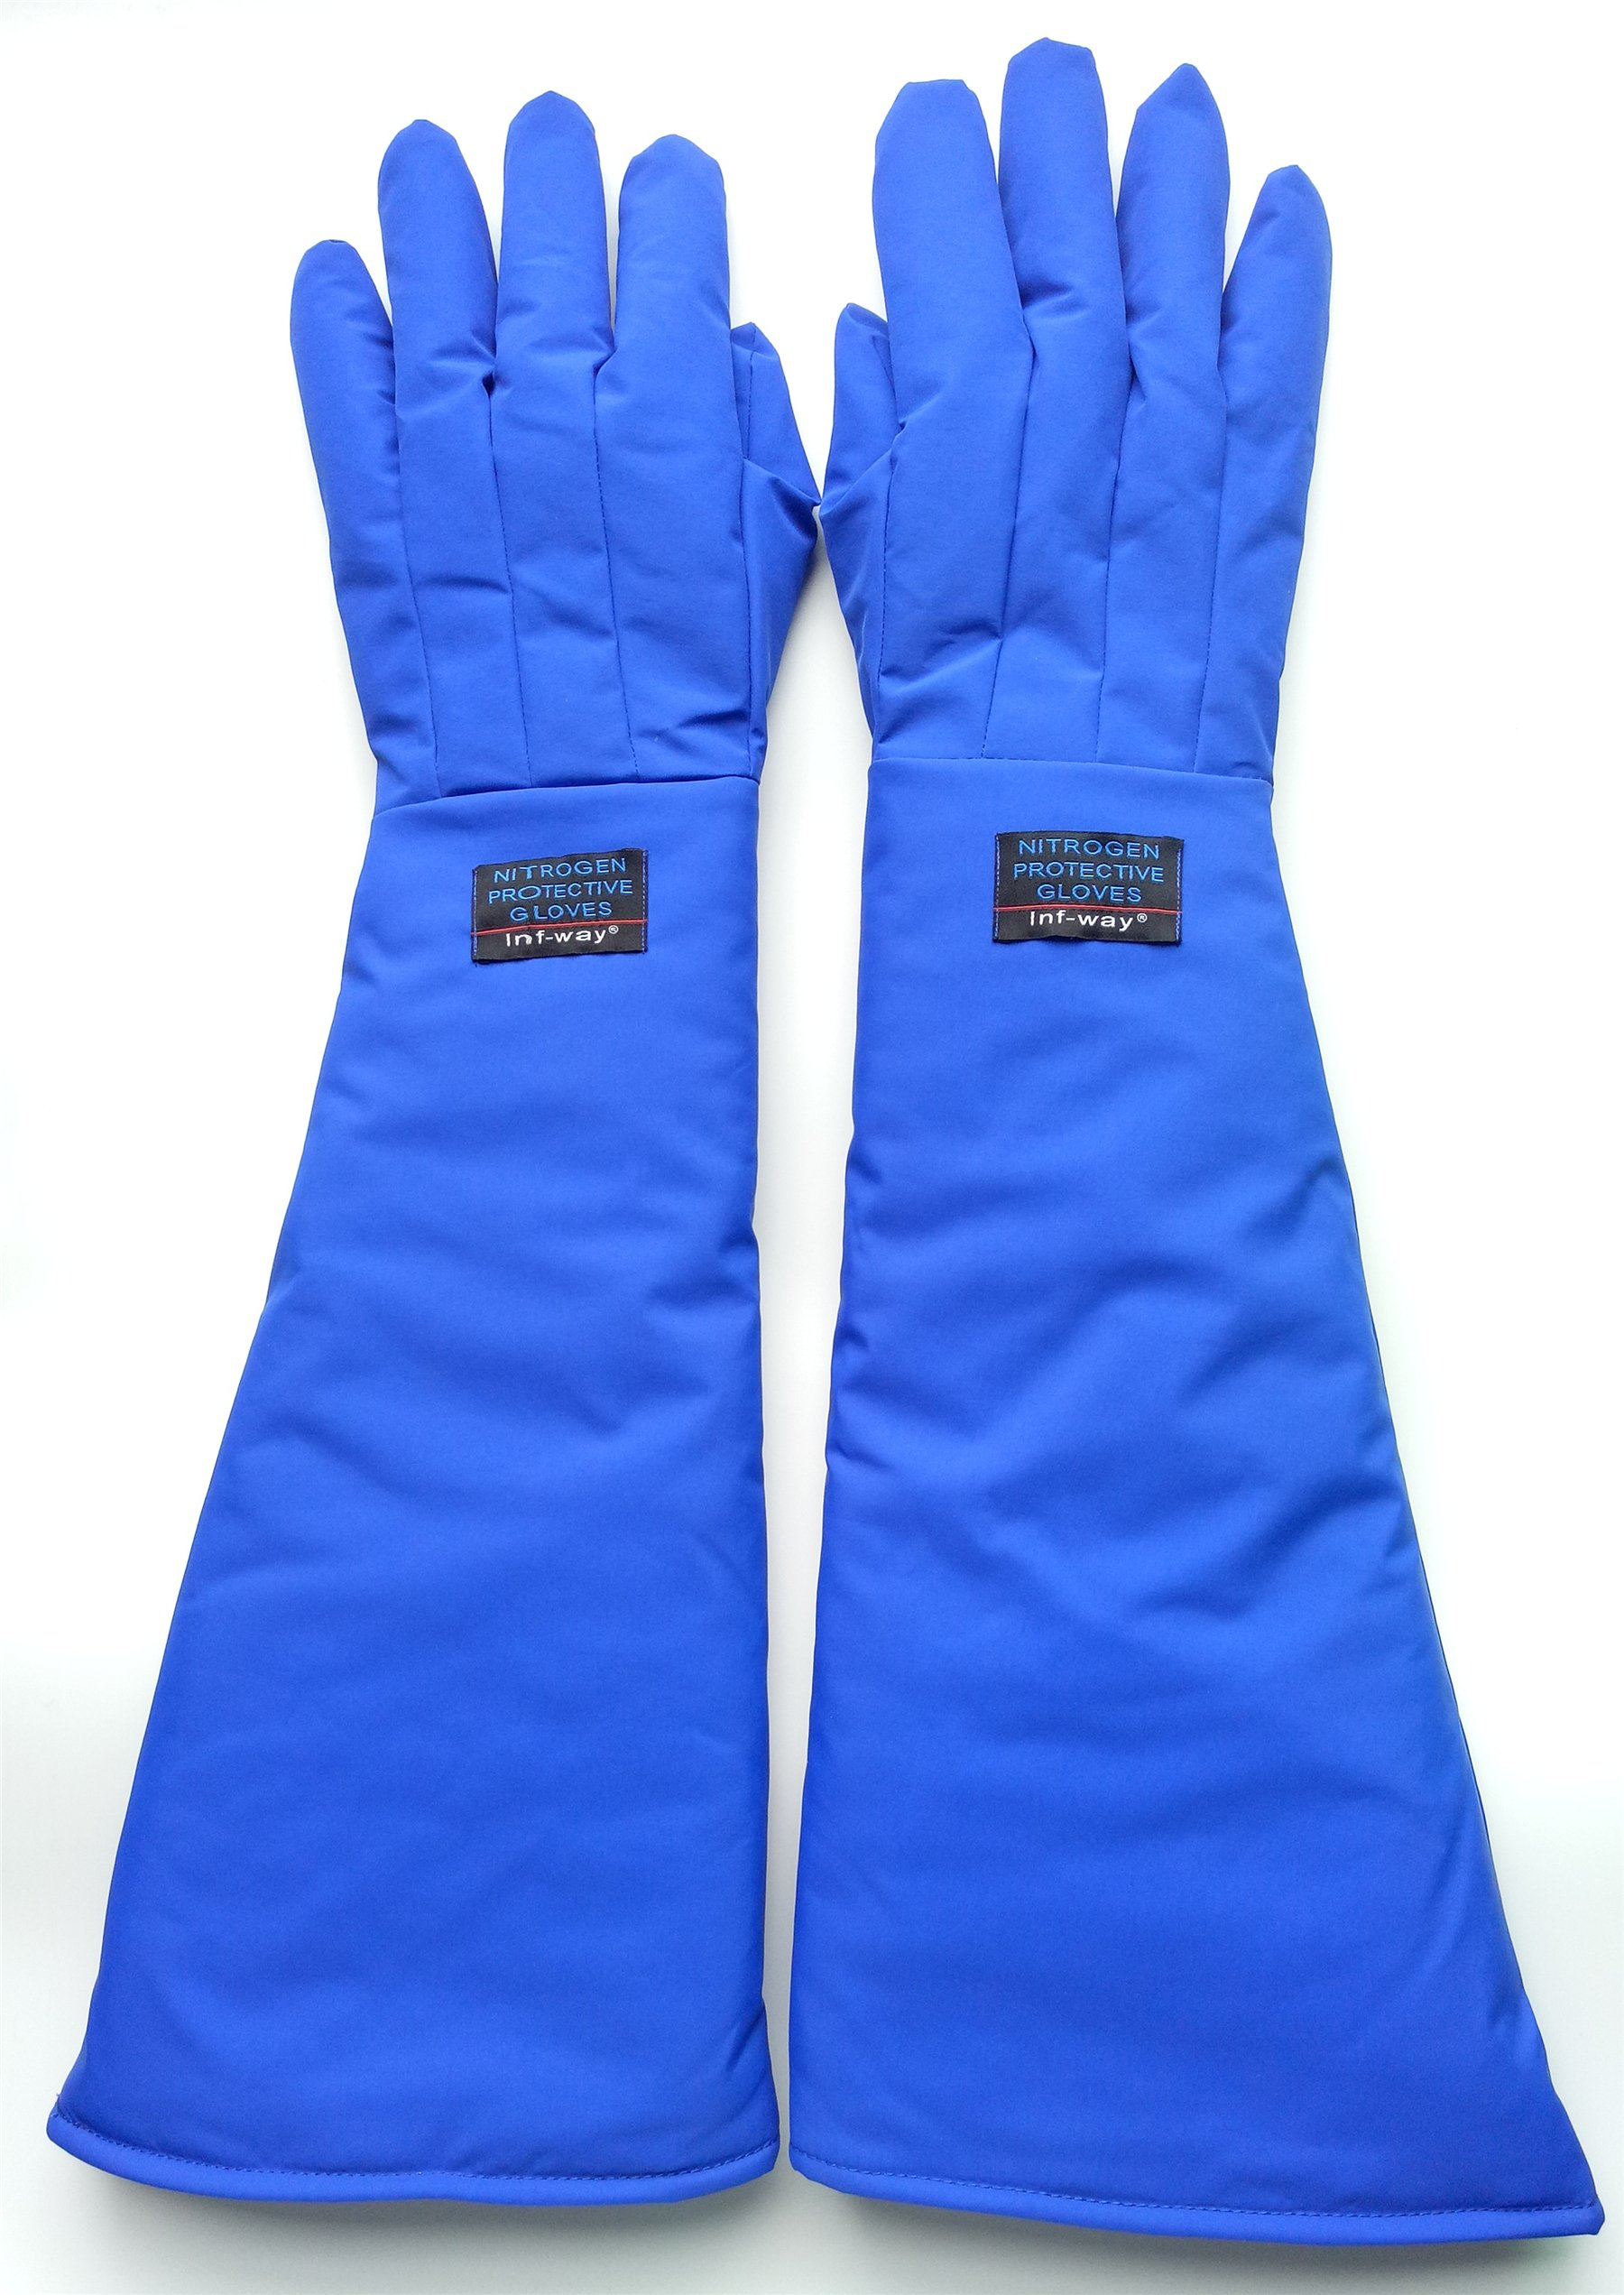 Inf-way 4 Sizes Long Cryogenic Gloves Waterproof Low Temperature Resistant LN2 Liquid Nitrogen Protective Gloves Cold Storage Safety Frozen Gloves (Blue Large)